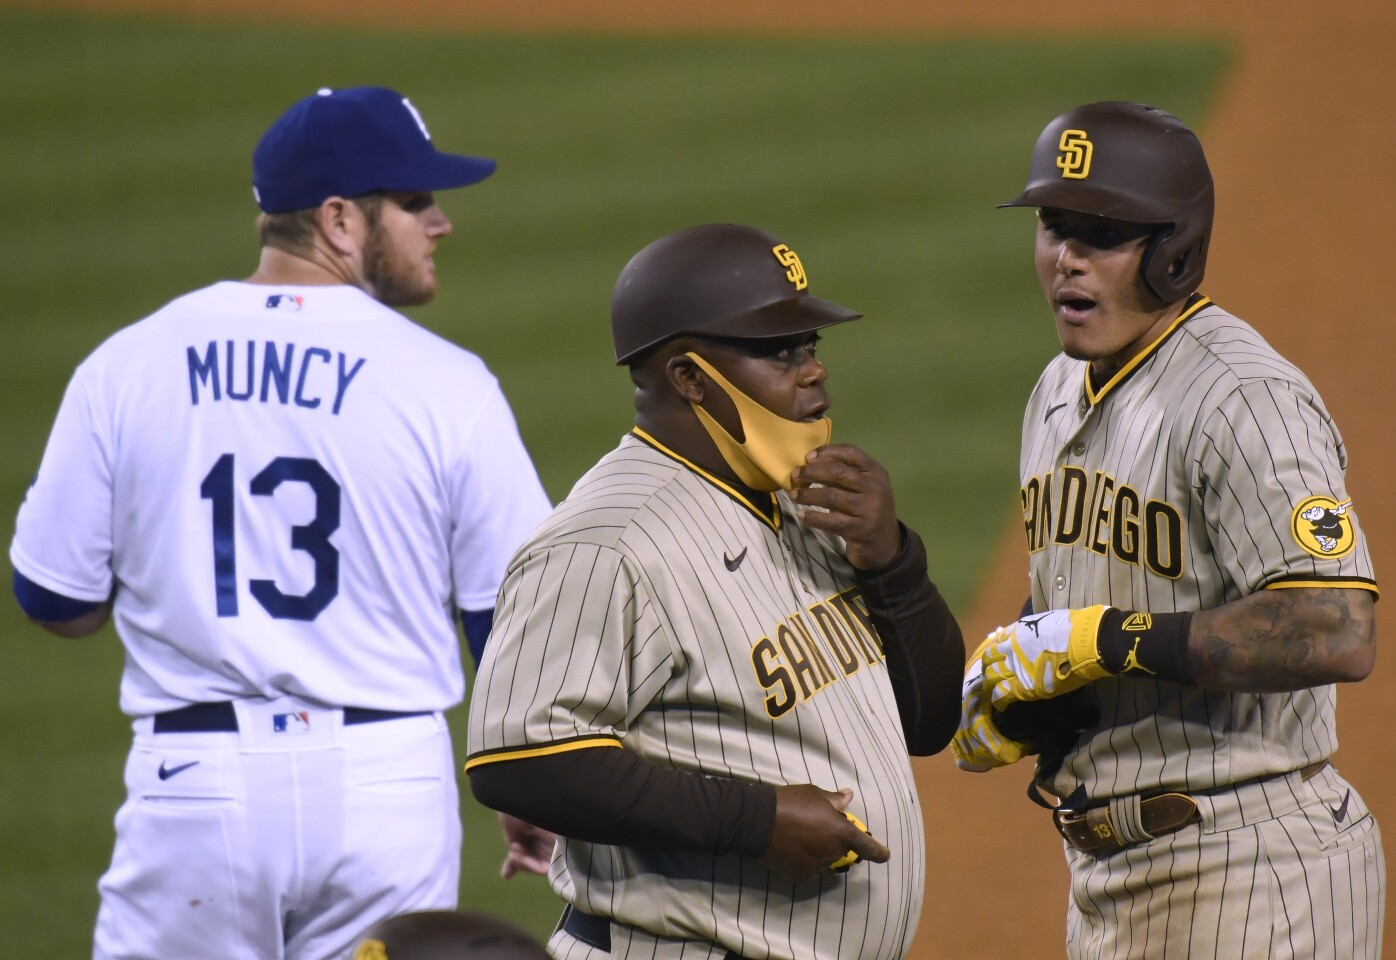 LOS ANGELES, CALIFORNIA - APRIL 22: Manny Machado #13 of the San Diego Padres reacts to his RBI single with Wayne Kirby #41 and Max Muncy #13 of the Los Angeles Dodgers, to score Fernando Tatis Jr. #23 and take a 1-0 lead, during the fourth inning at Dodger Stadium on April 22, 2021 in Los Angeles, California. (Photo by Harry How/Getty Images)